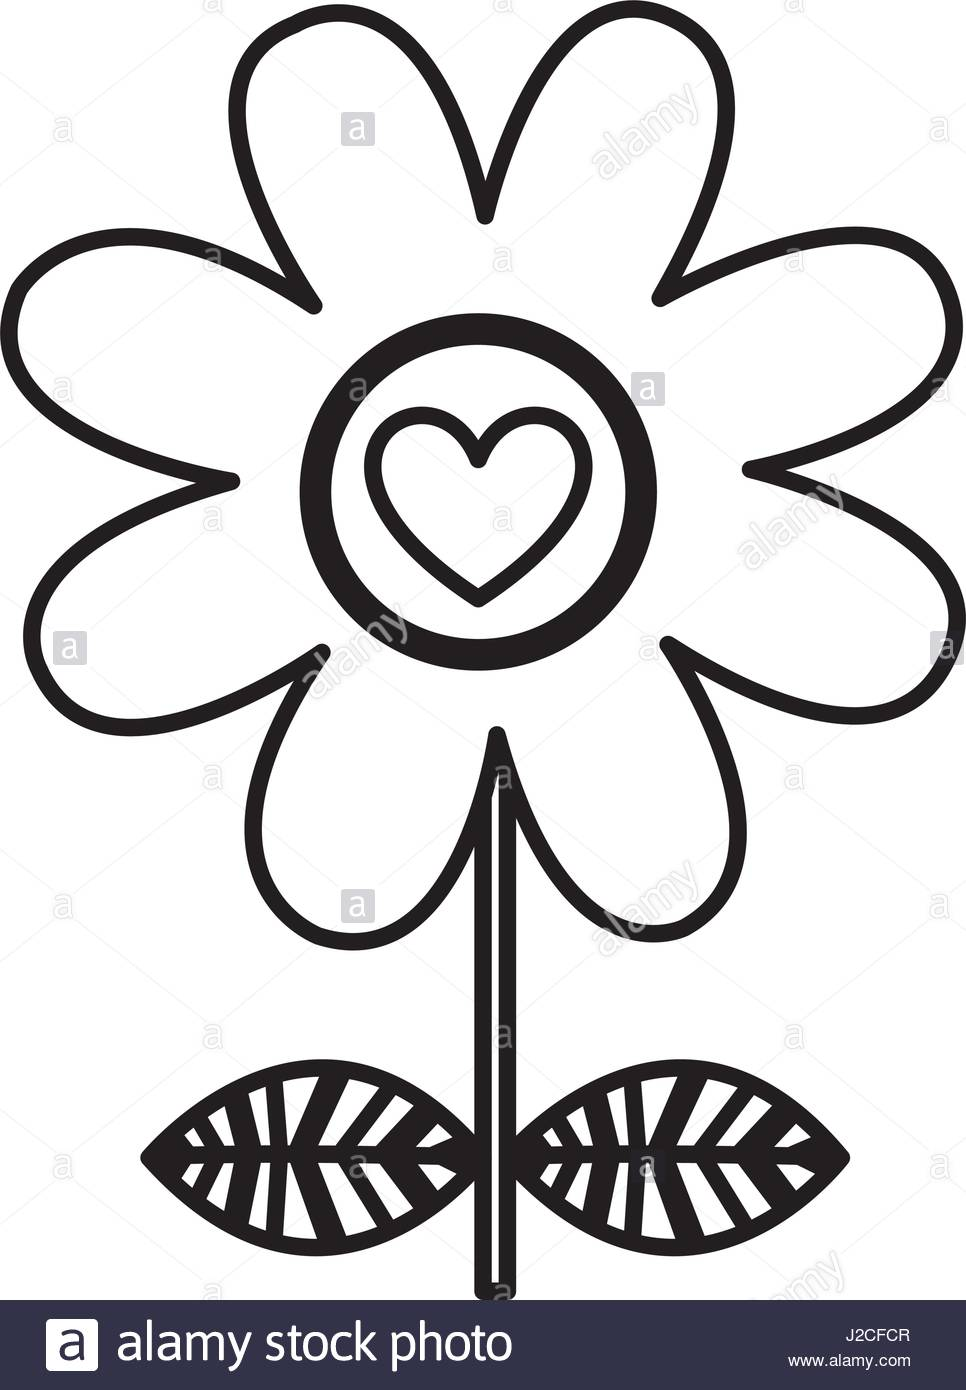 966x1390 Monochrome Silhouette Of Daisy Flower With Emblem Of Heart Stock